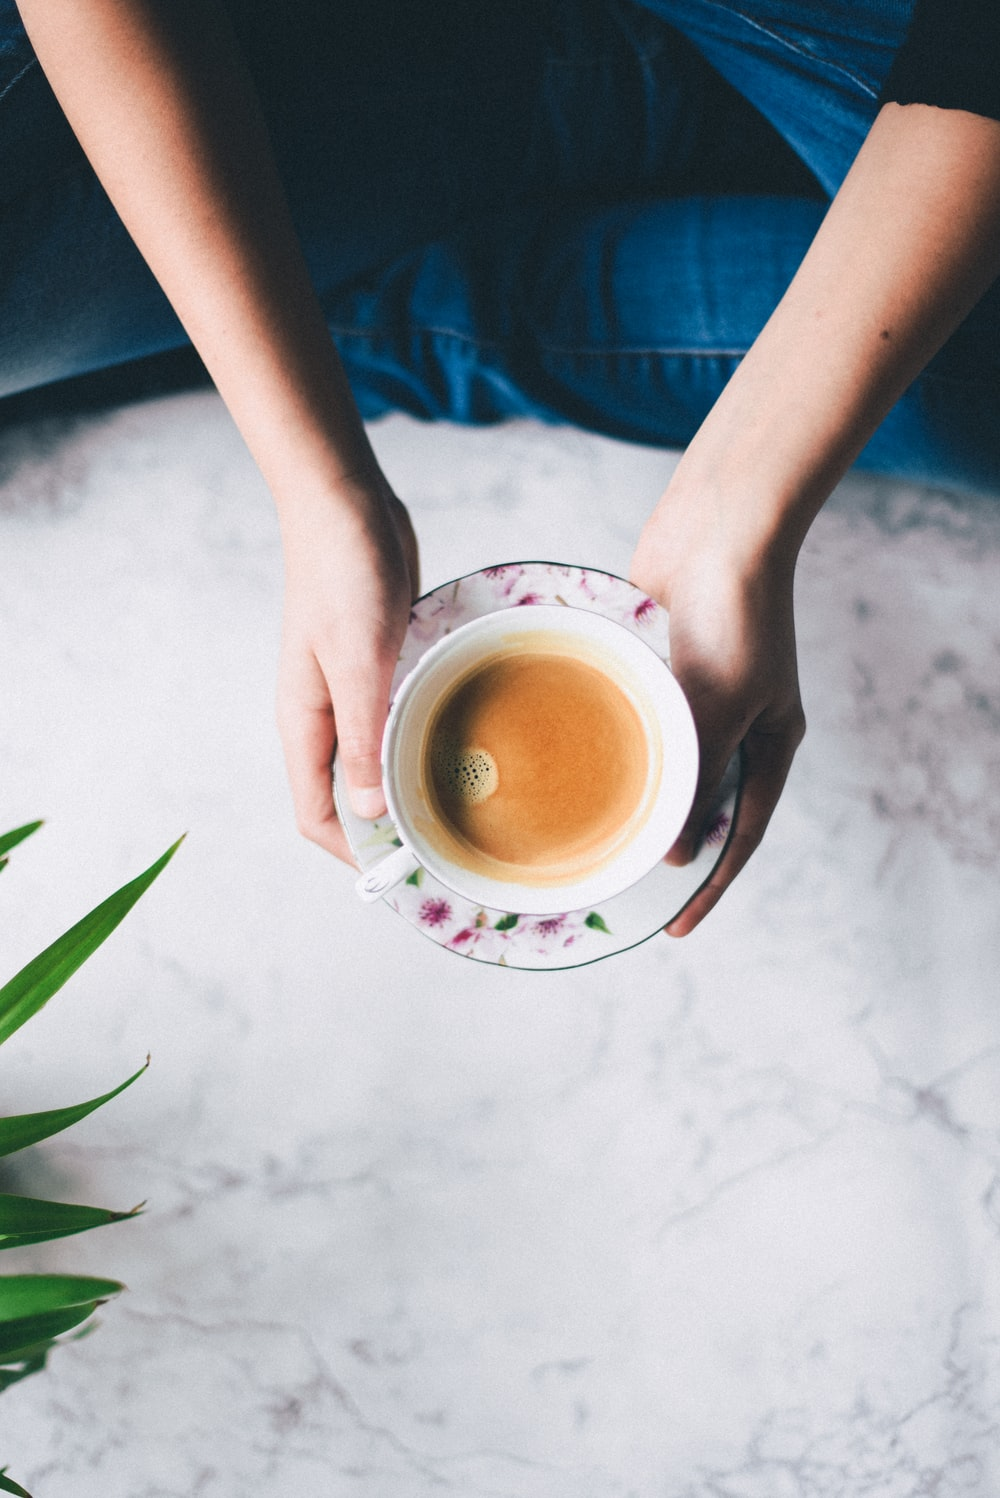 flat-lay photography of person holding teacup